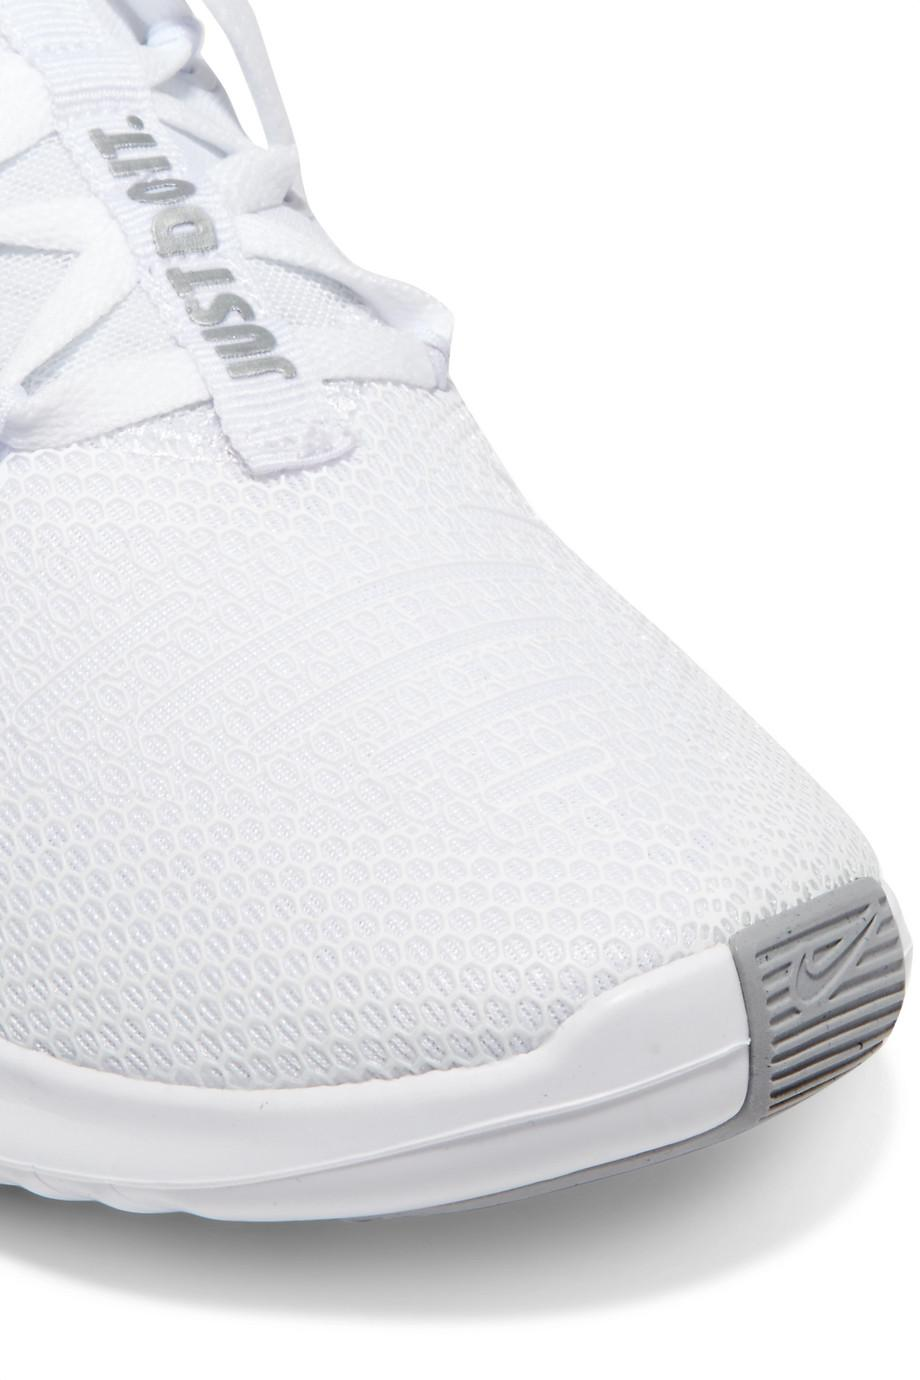 Free Tr 8 Stretch-knit And Mesh Sneakers - White Nike INOASiGp